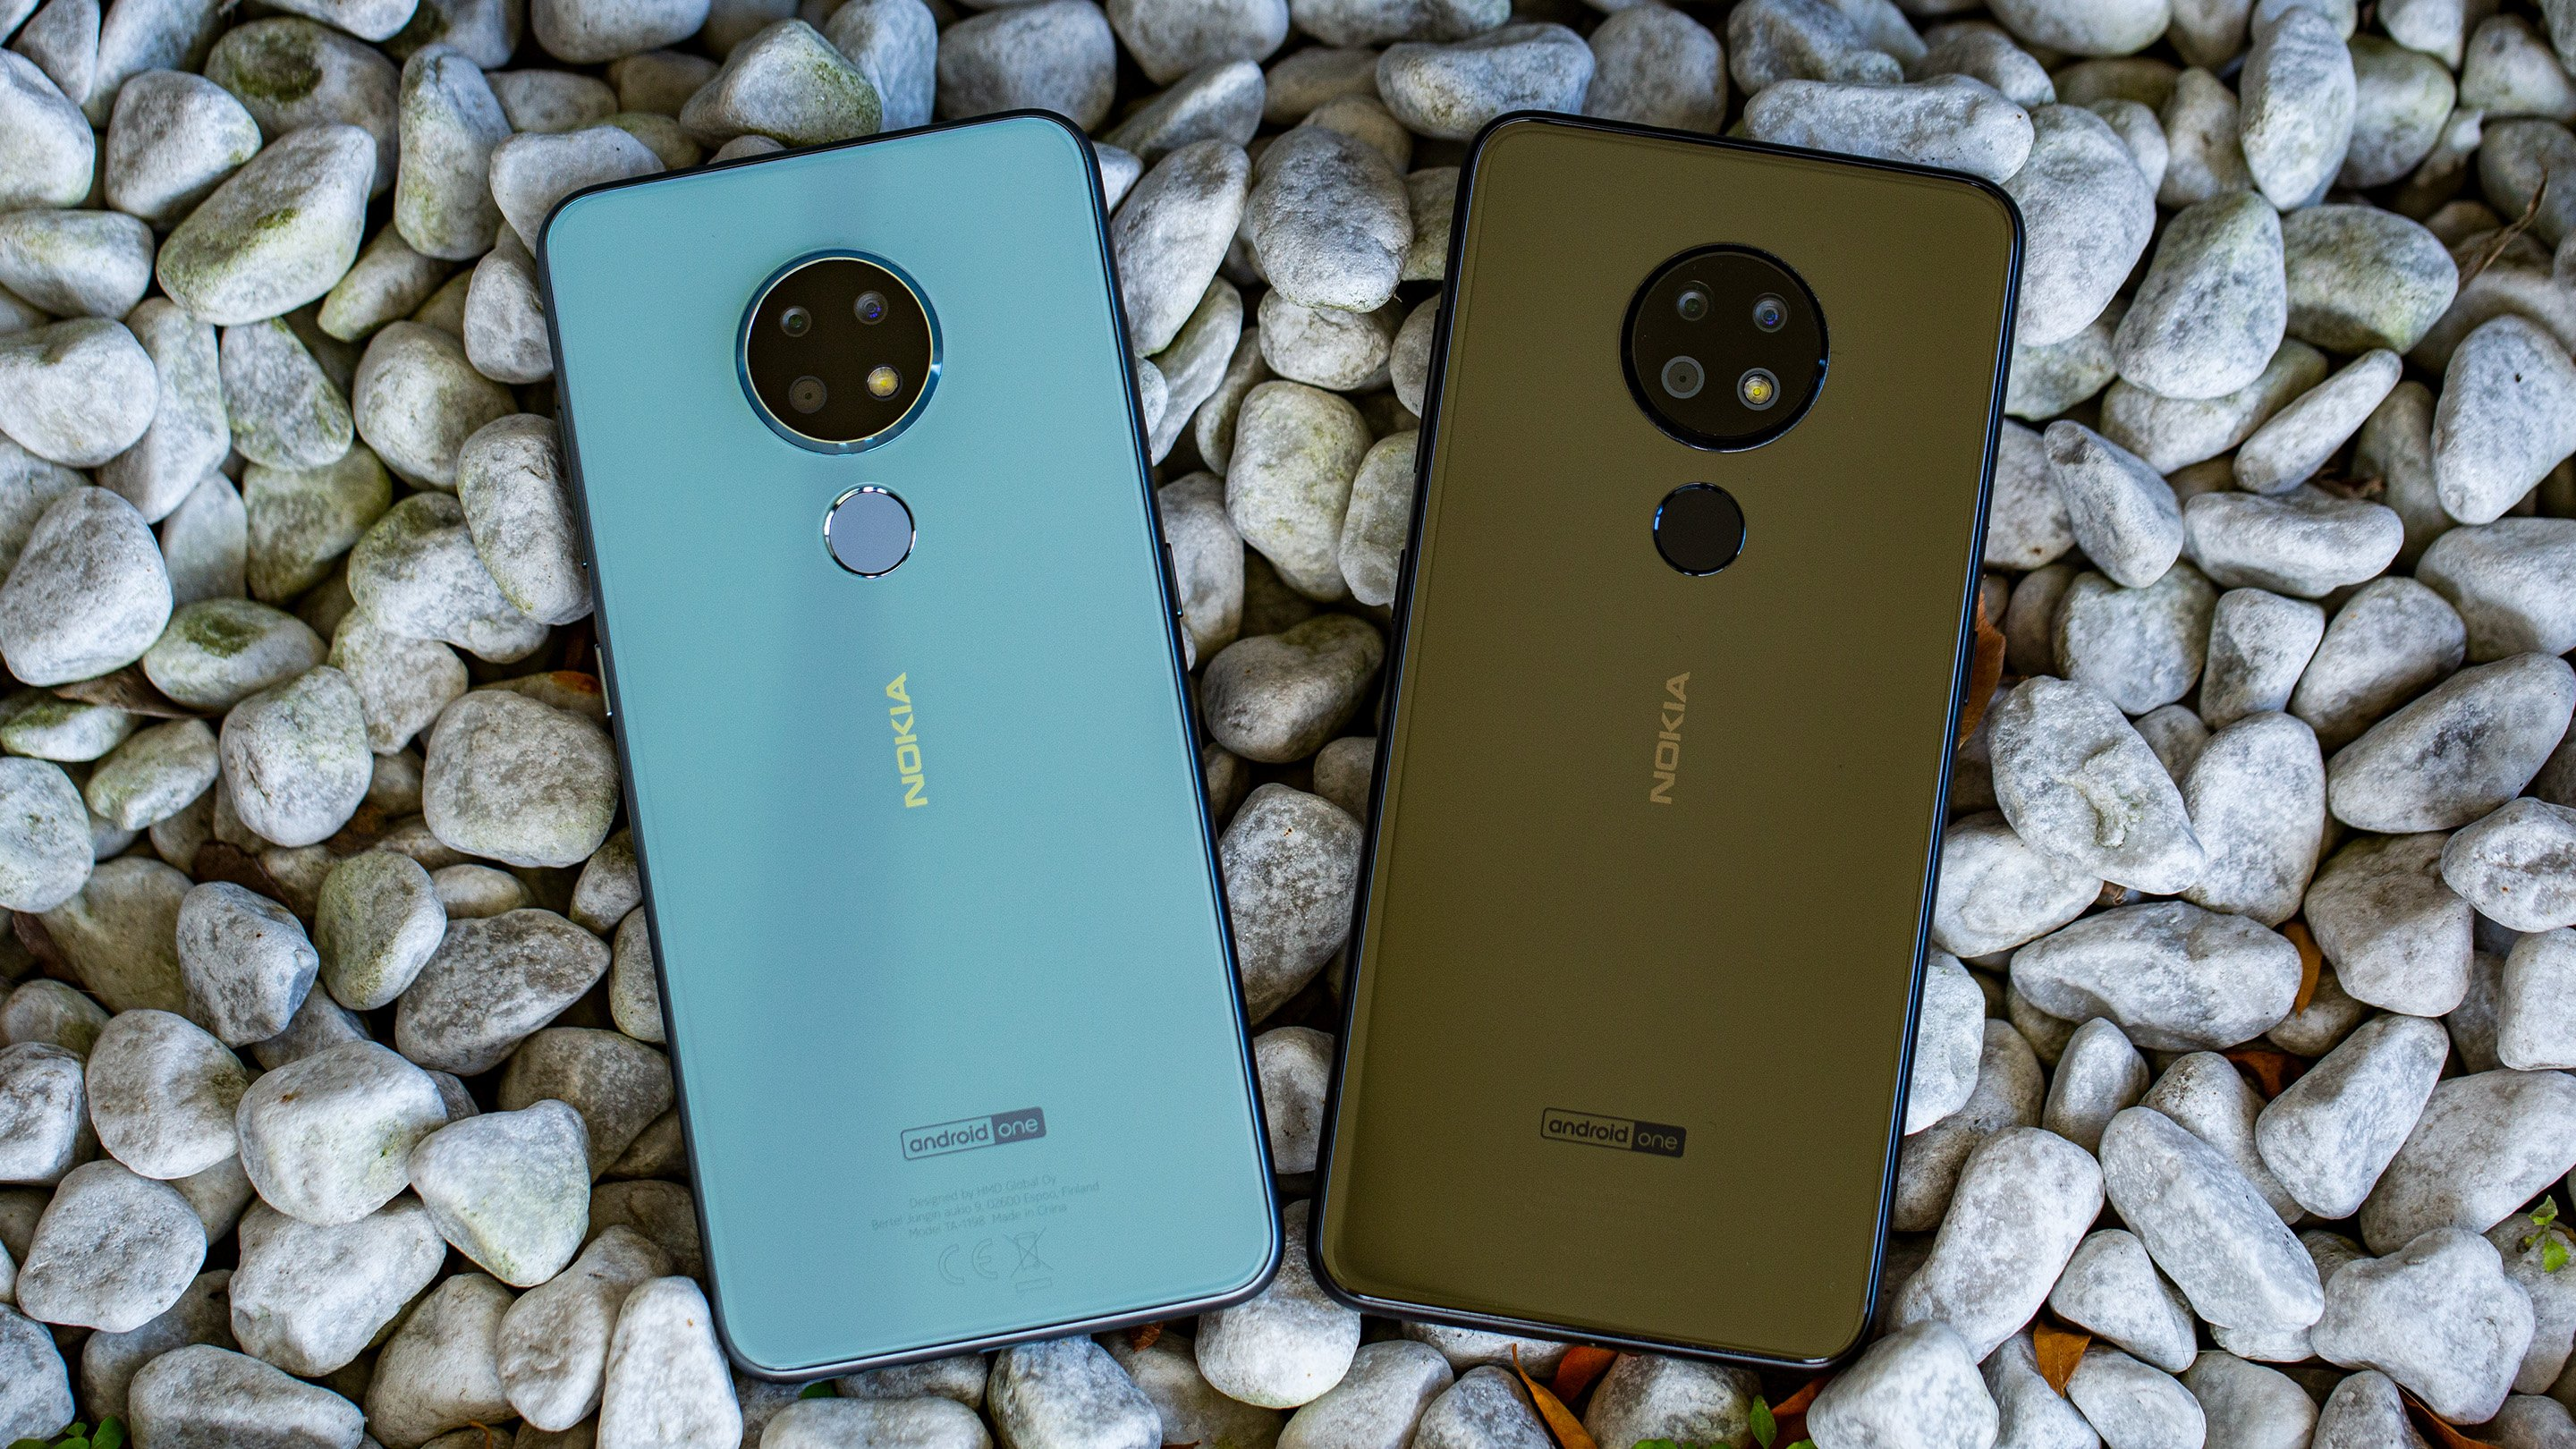 More phones by Nokia